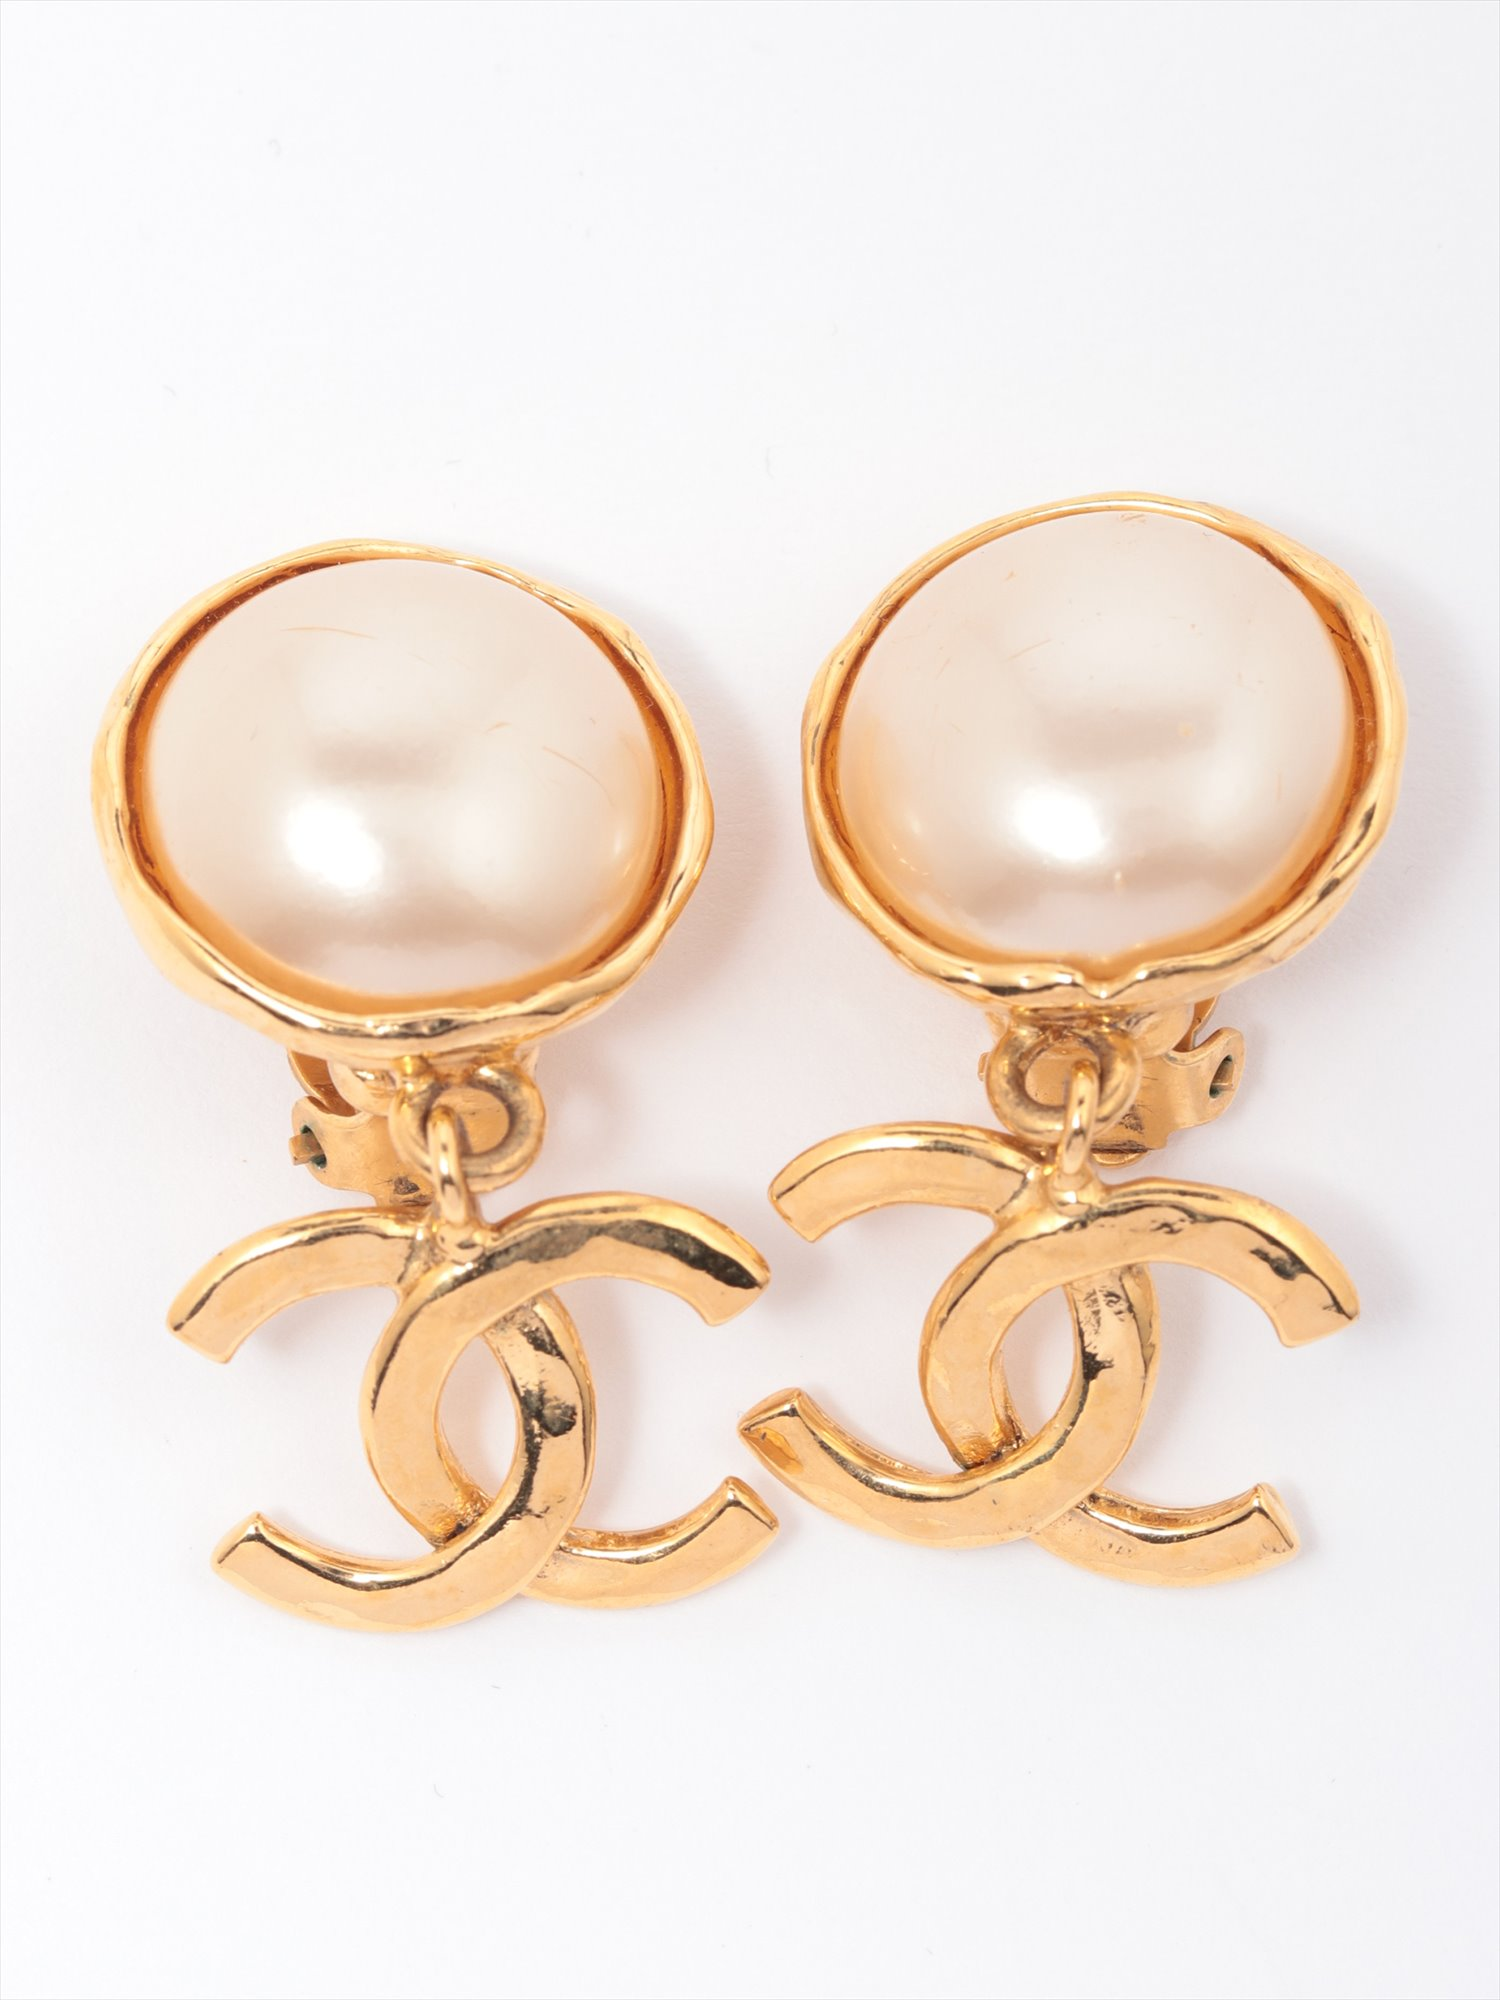 [Used goods] Chanel Coco mark earrings (for both ears) GP Gold fake pearl 94P